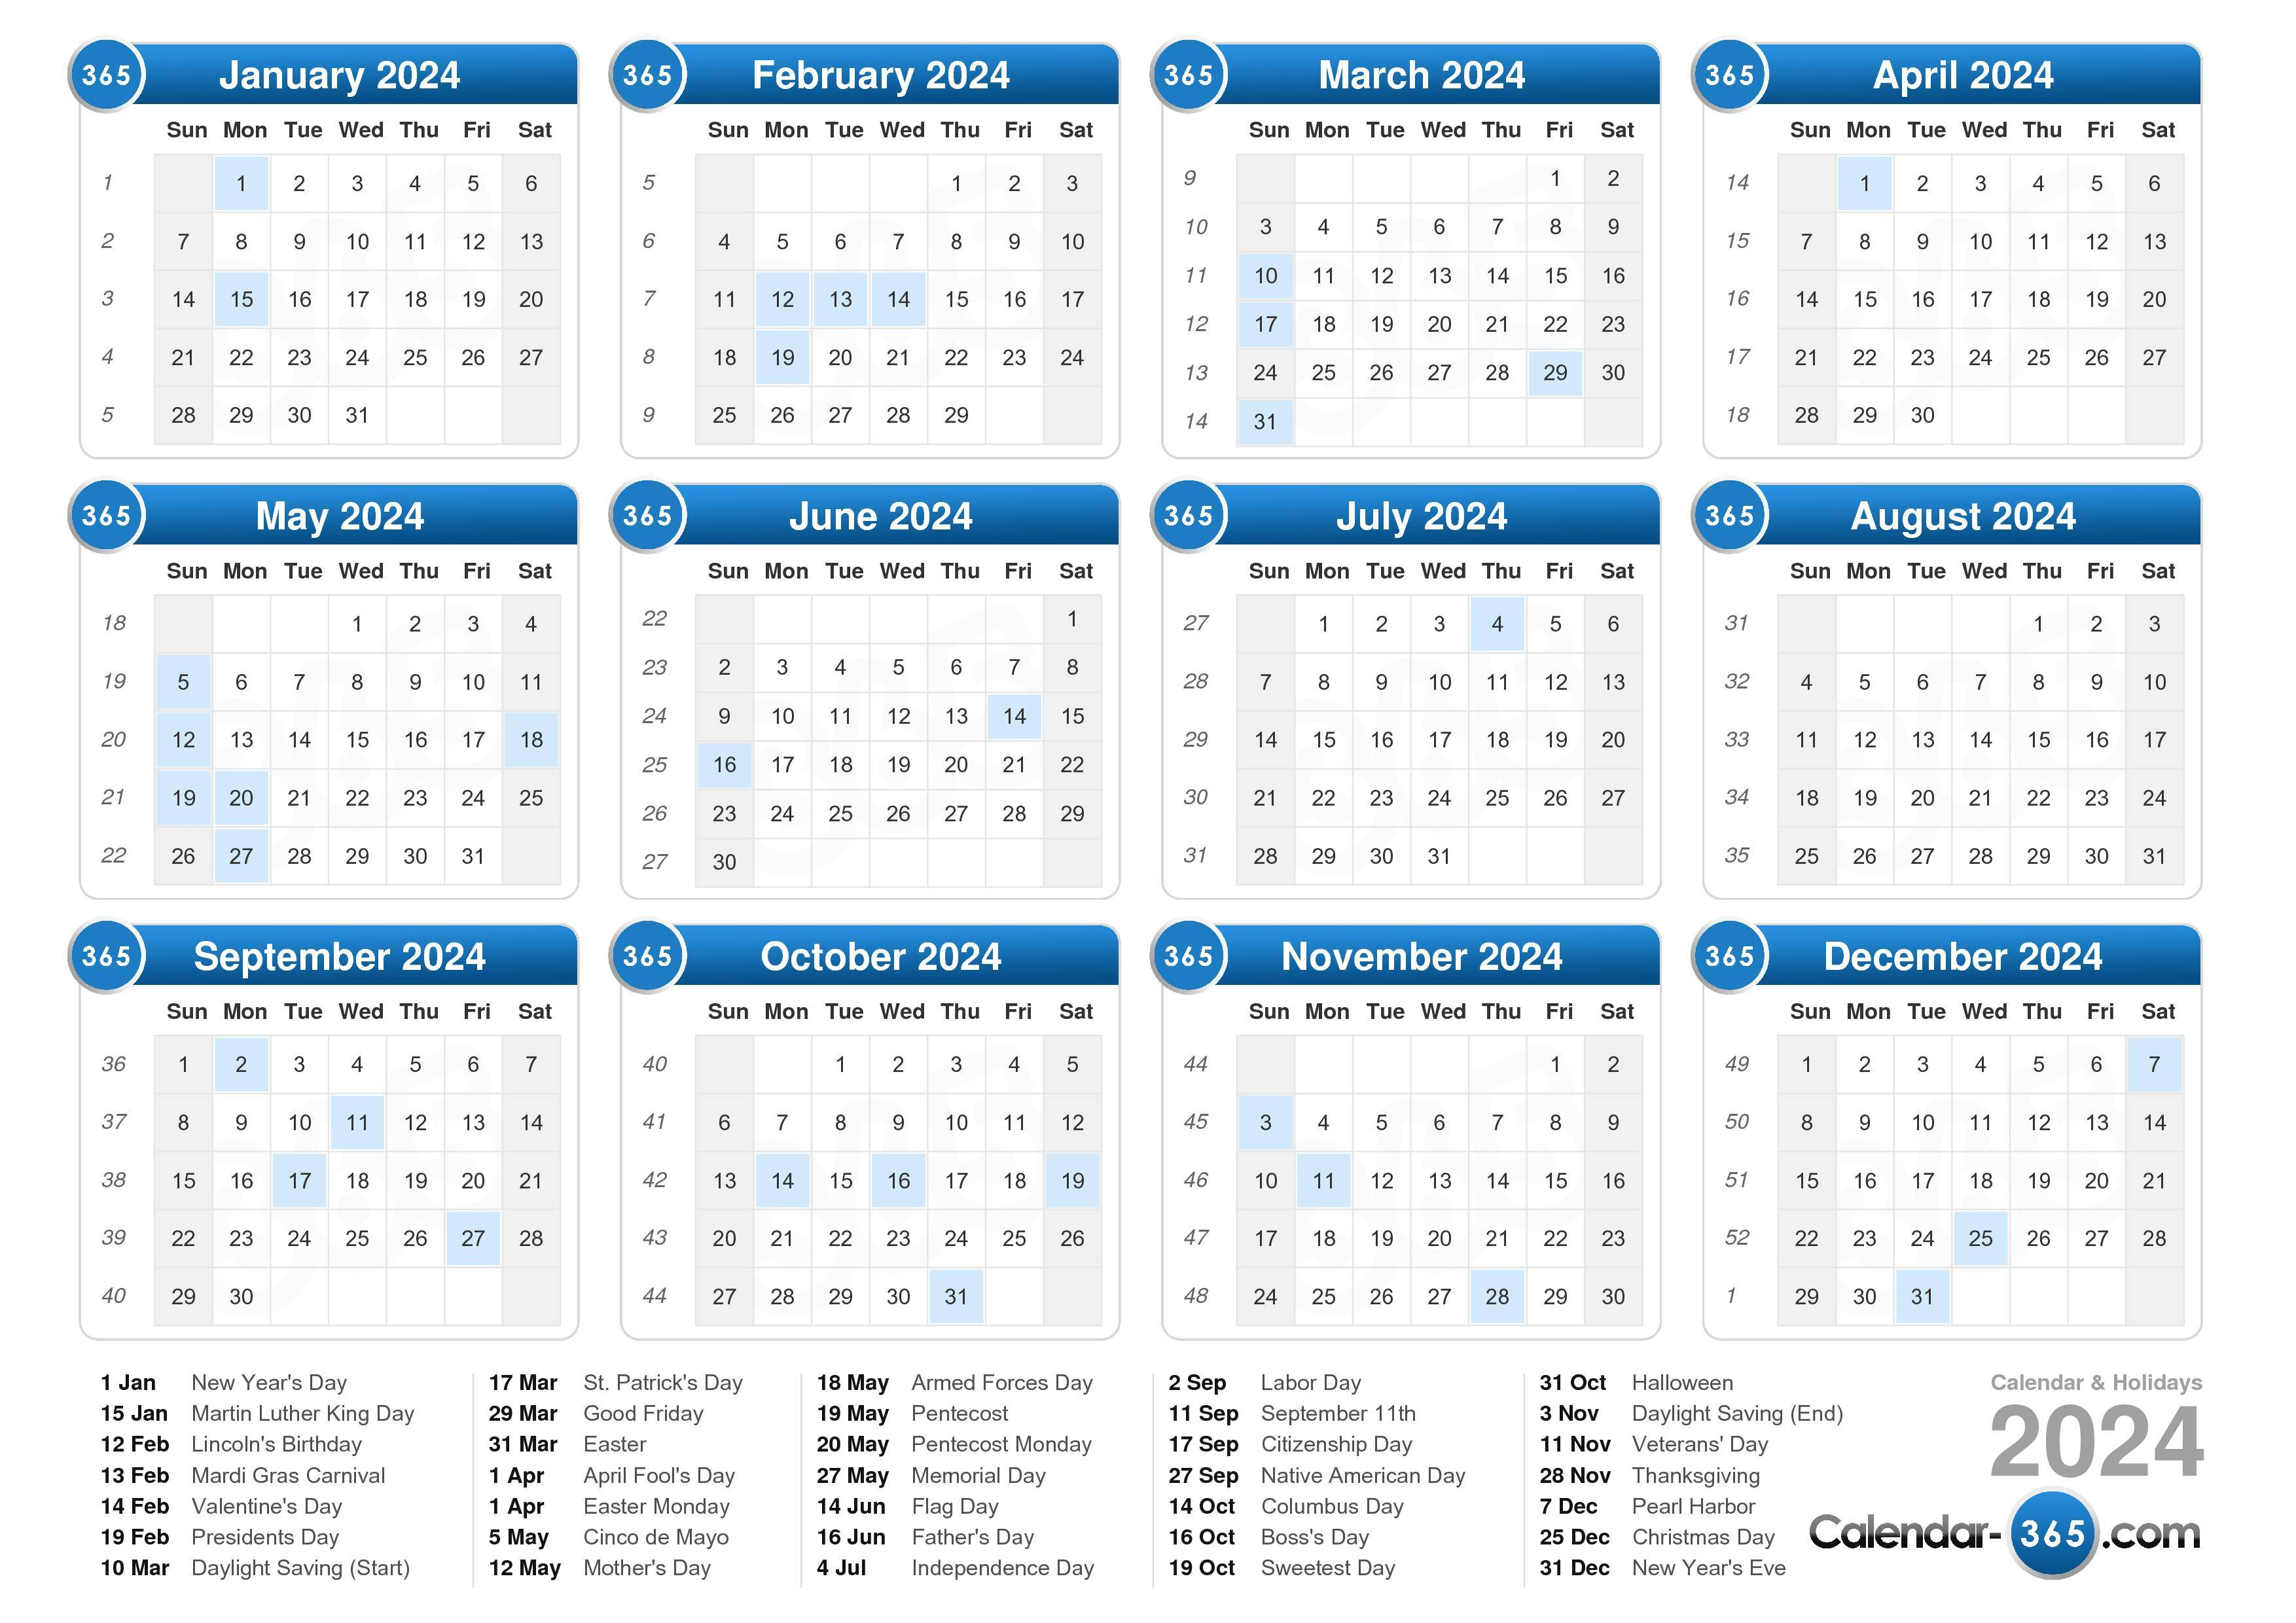 Download the printable 2024 calendar with holidays.